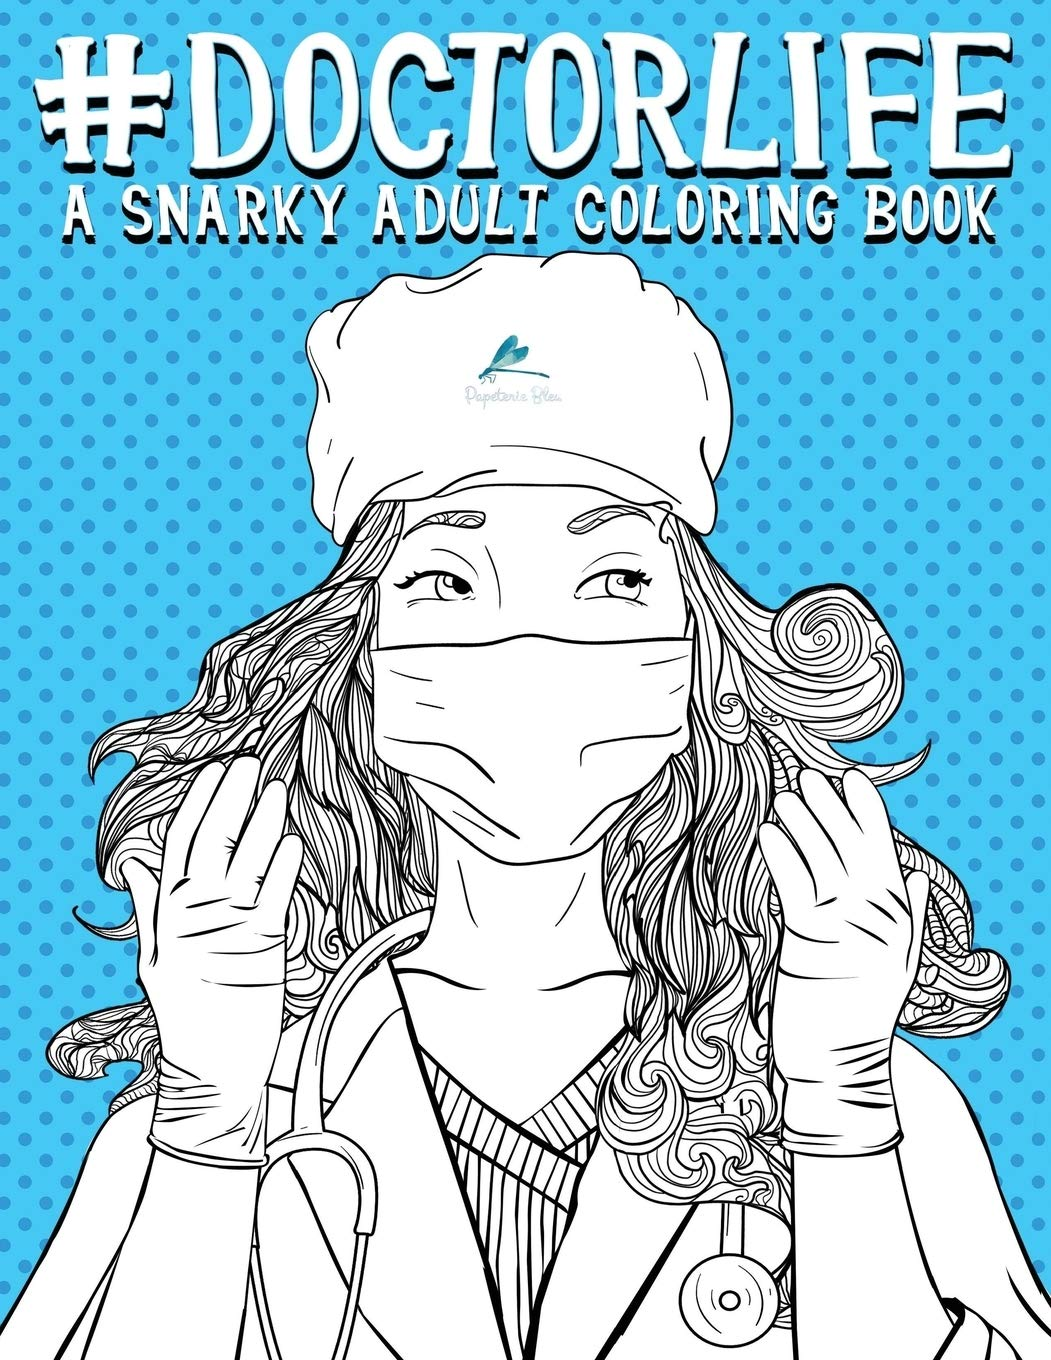 Doctor Life A Snarky Adult Coloring Book Papeterie Bleu 9781640010741 Amazon Com Books